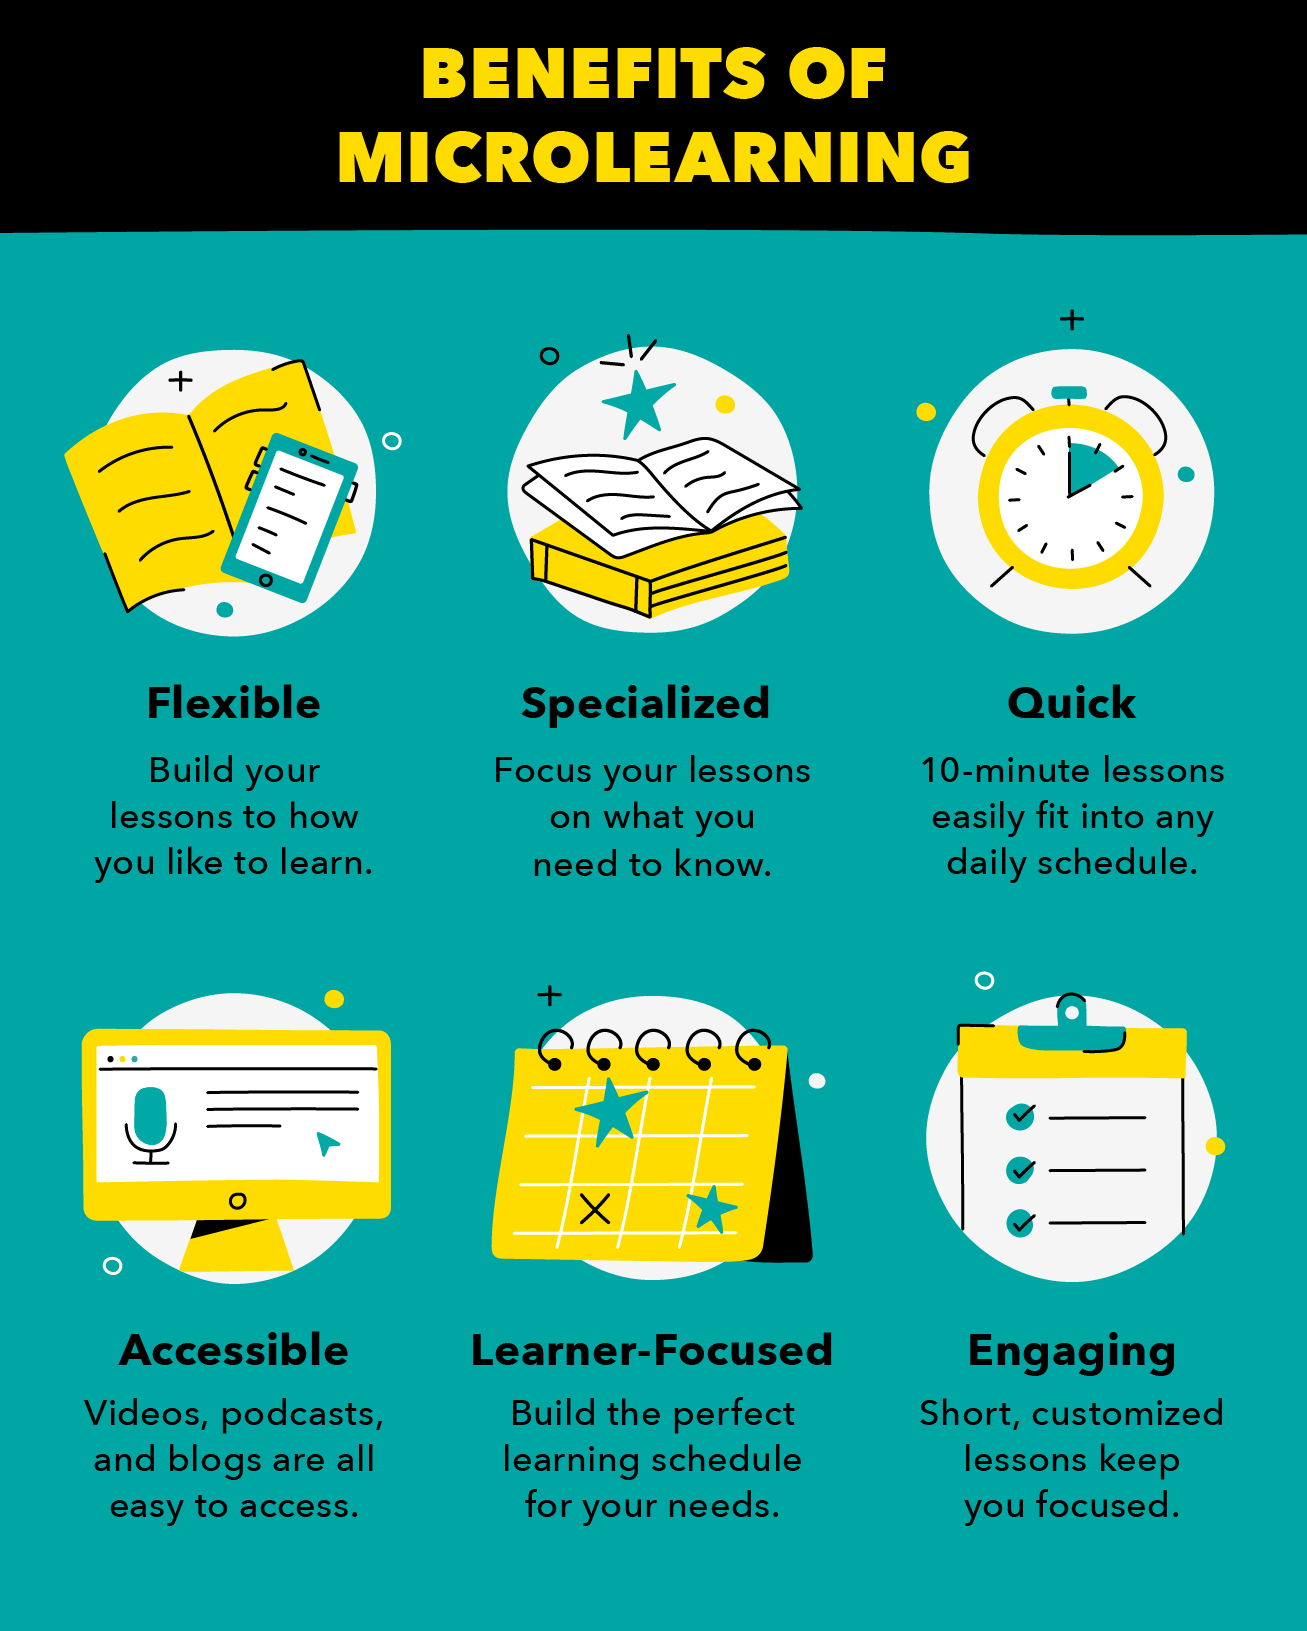 illustration highlighting the benefits of microlearning